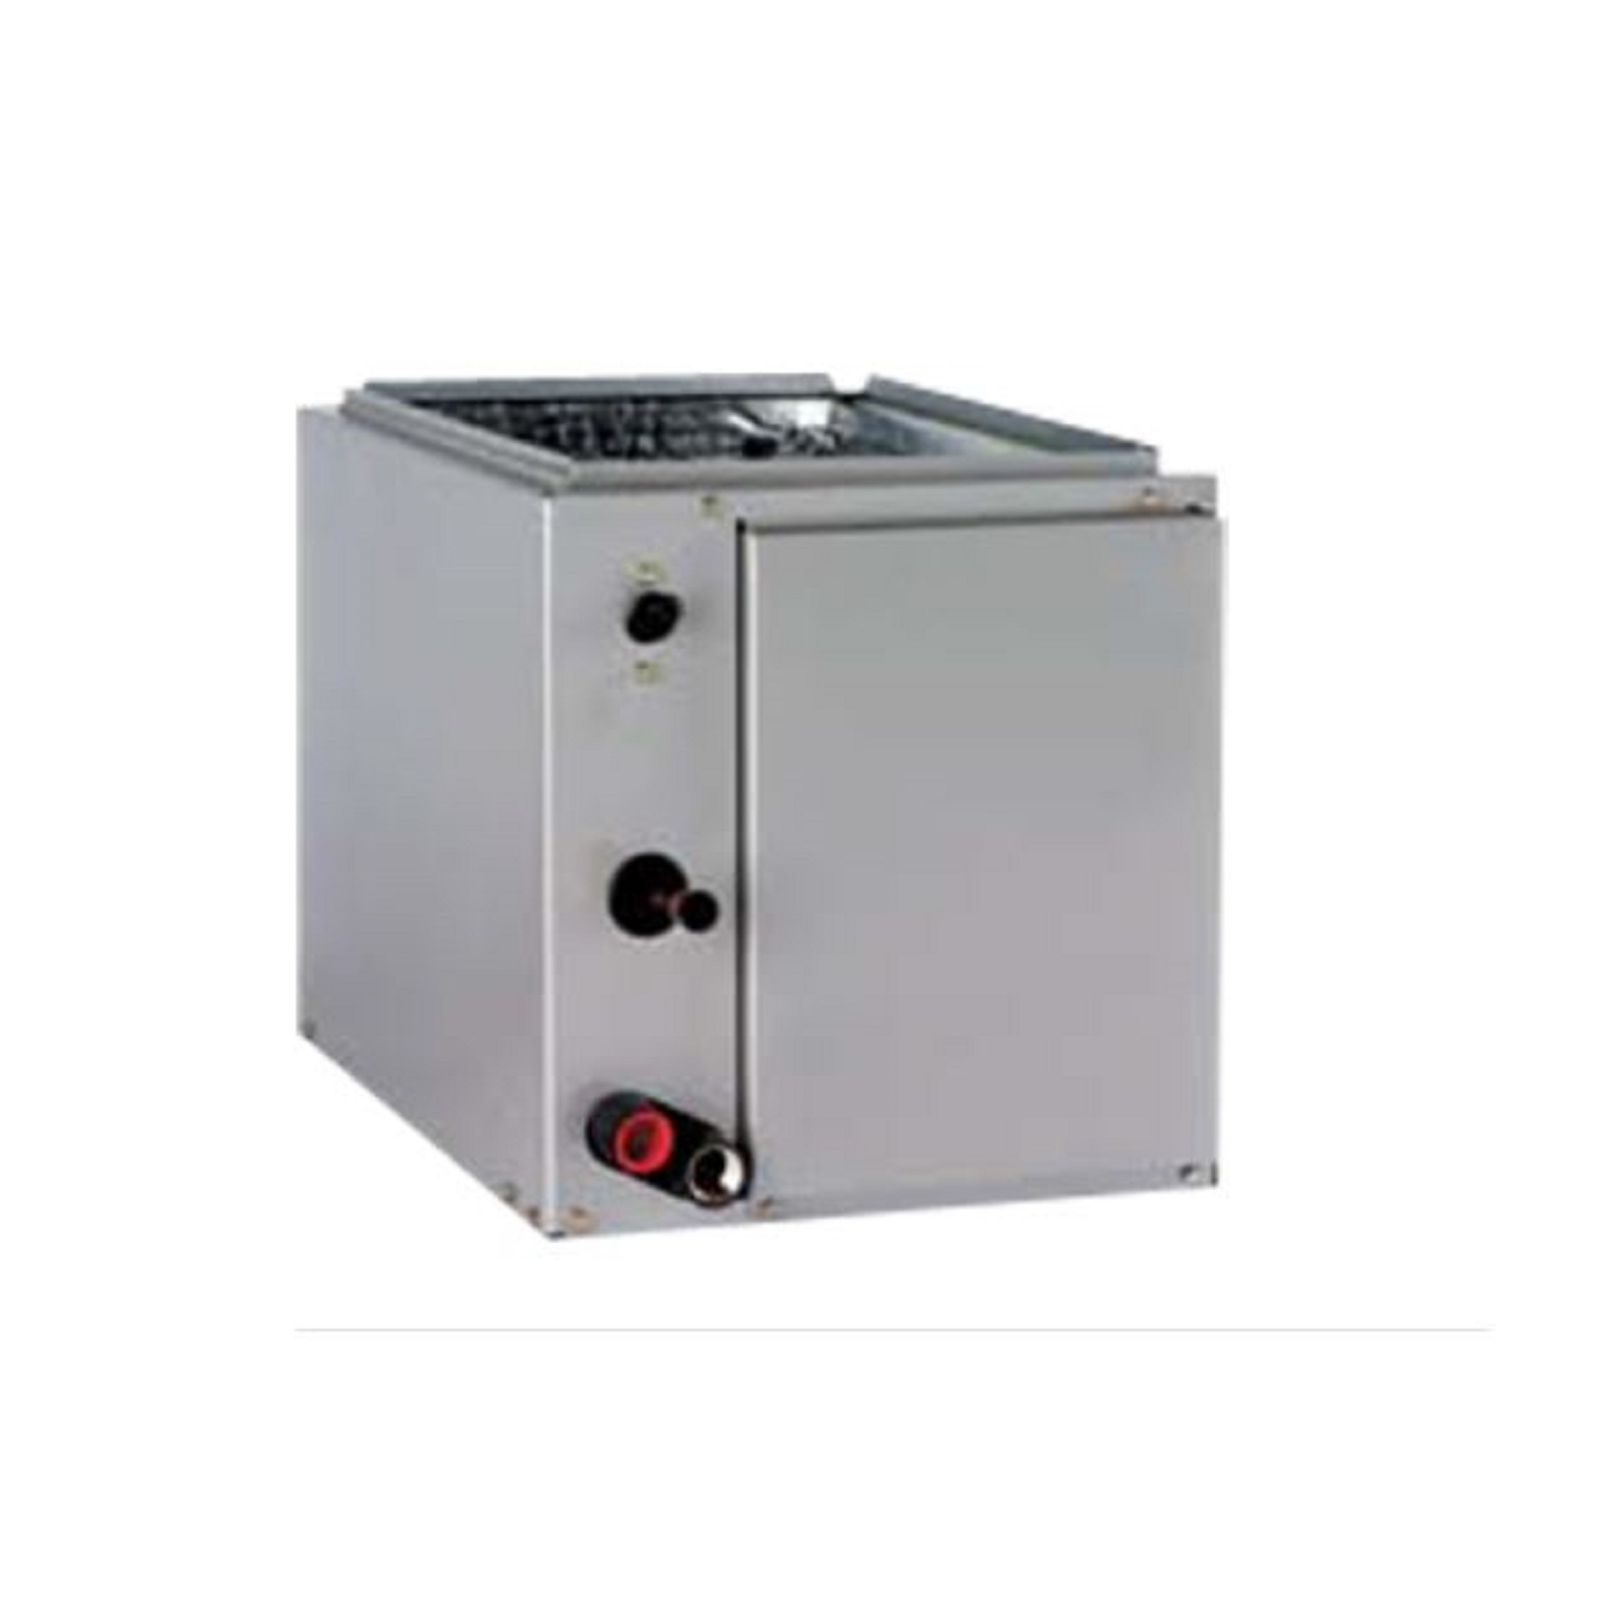 "Tempstar END4X30T17A - 2 1/2 Ton, R410A, Cased Up/Down Flow, N Type Evaporator Coil, With TXV, 17.5"" Wide"